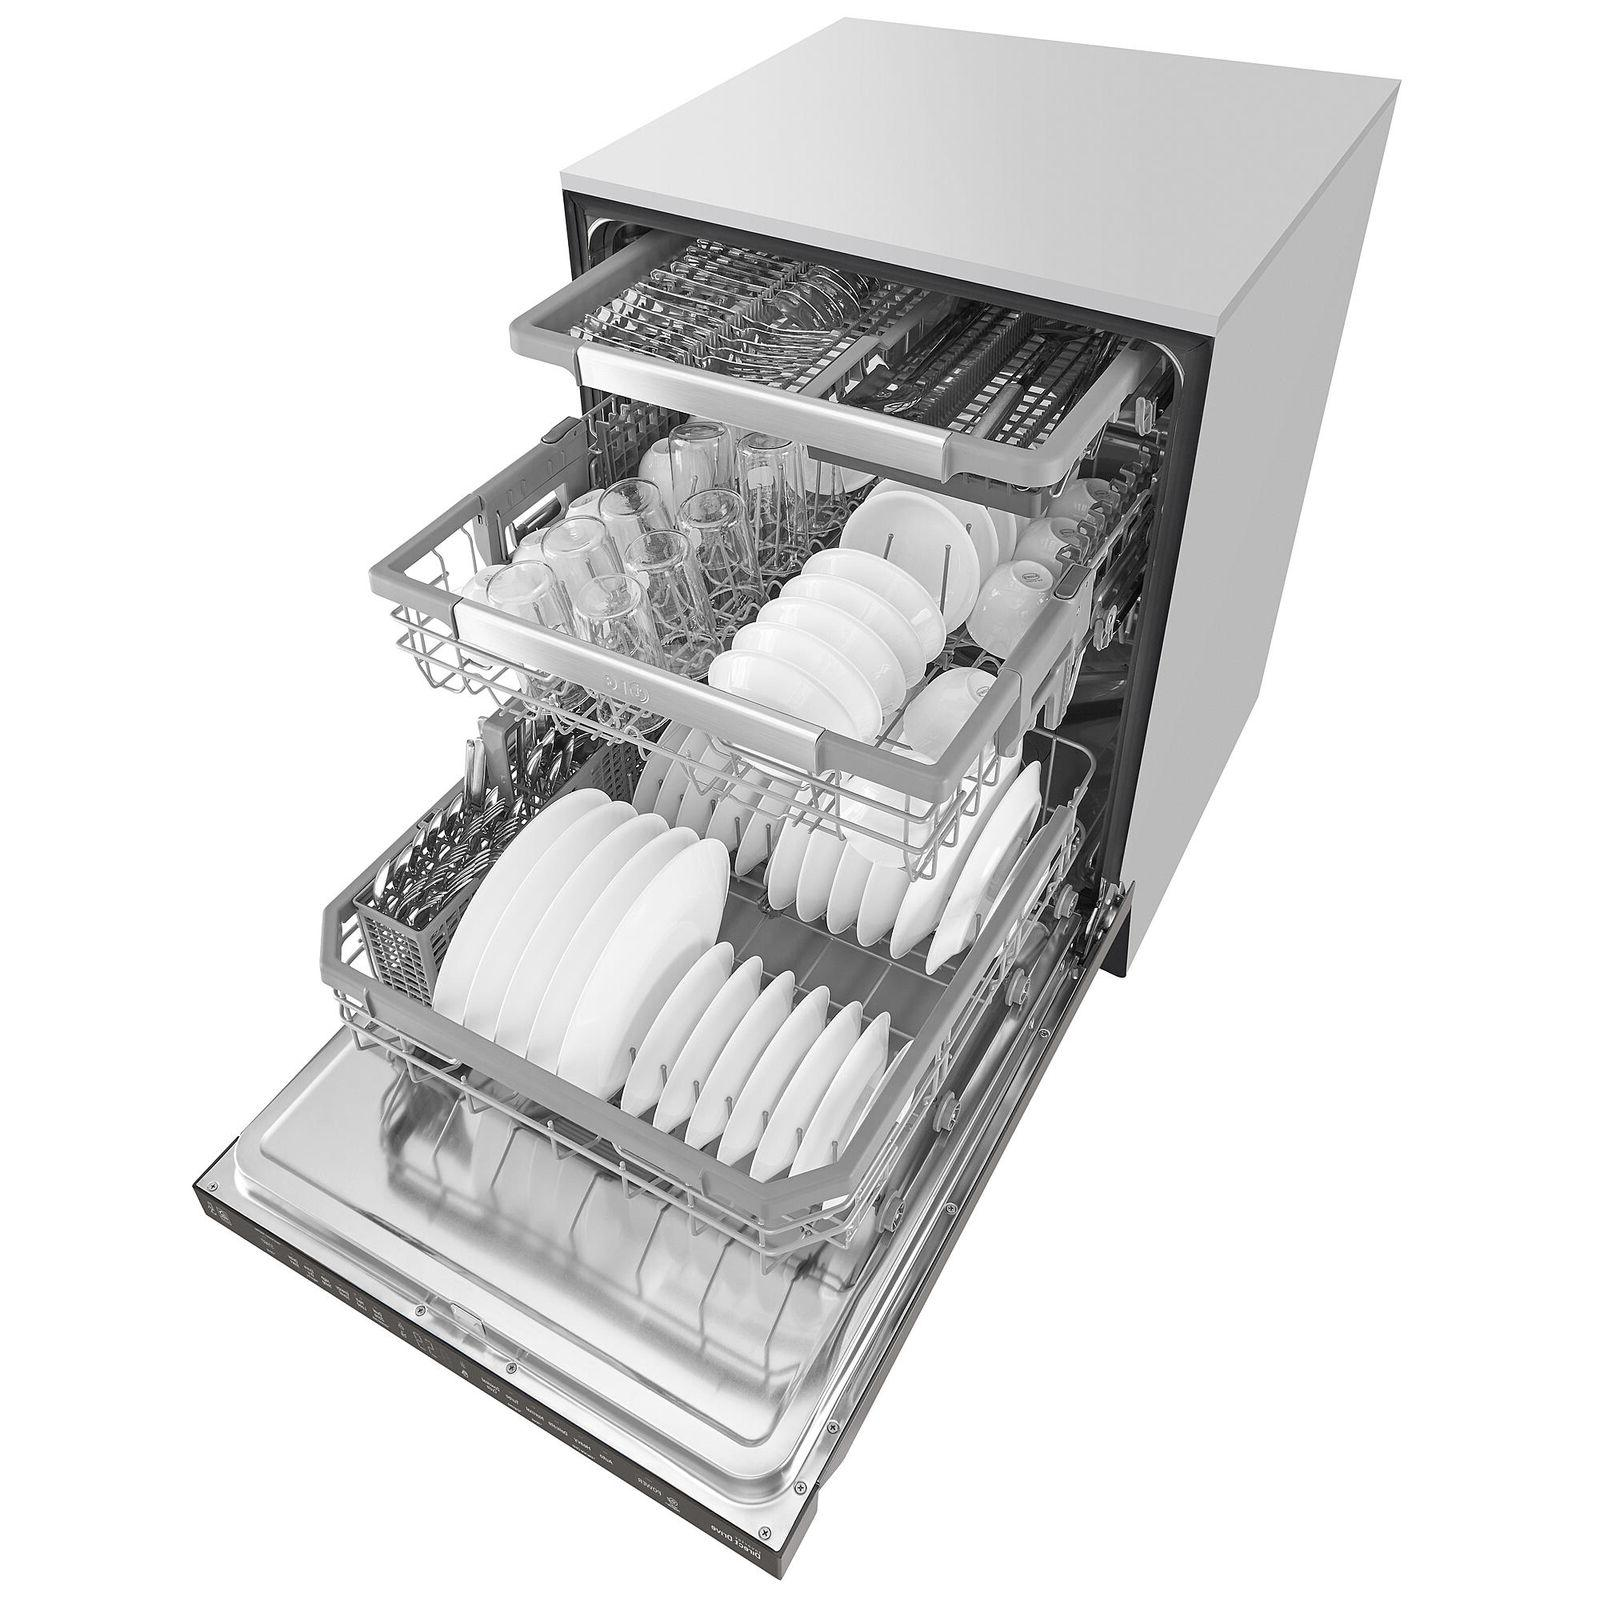 "NEW LDP6797BD 24"" Smart Top Control Dishwasher"